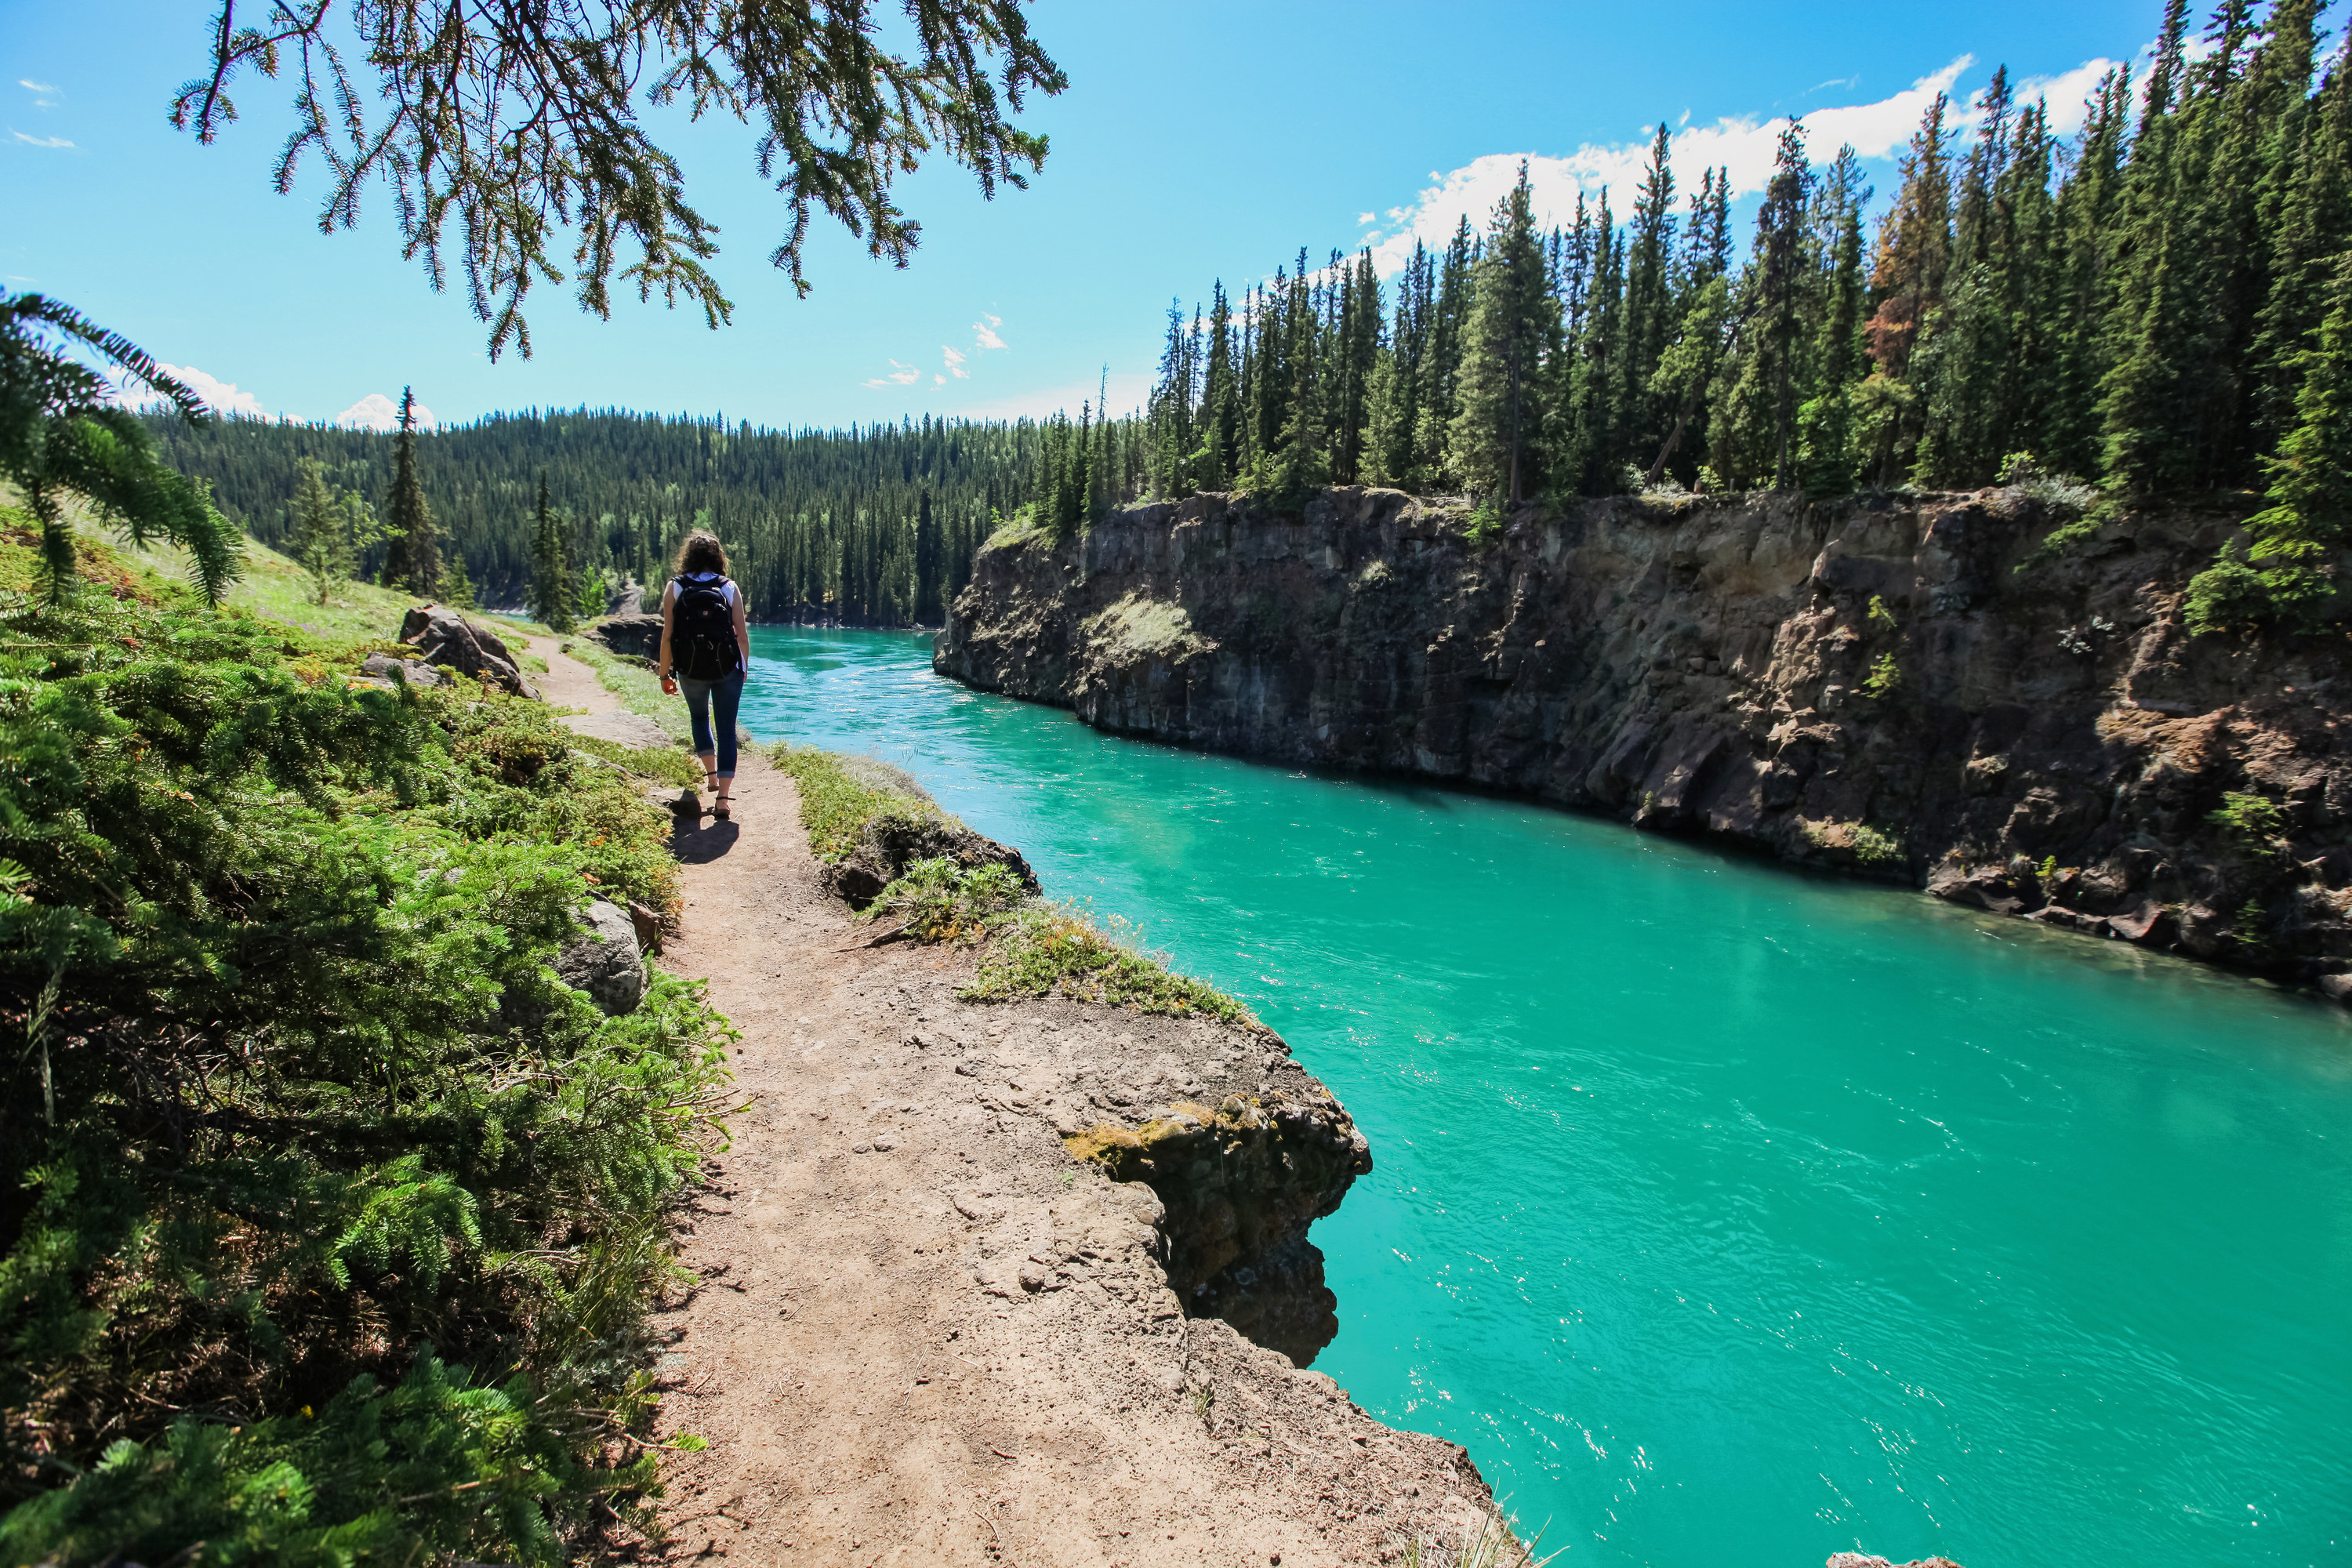 A hiker passes alongside Miles Canyon in the Yukon